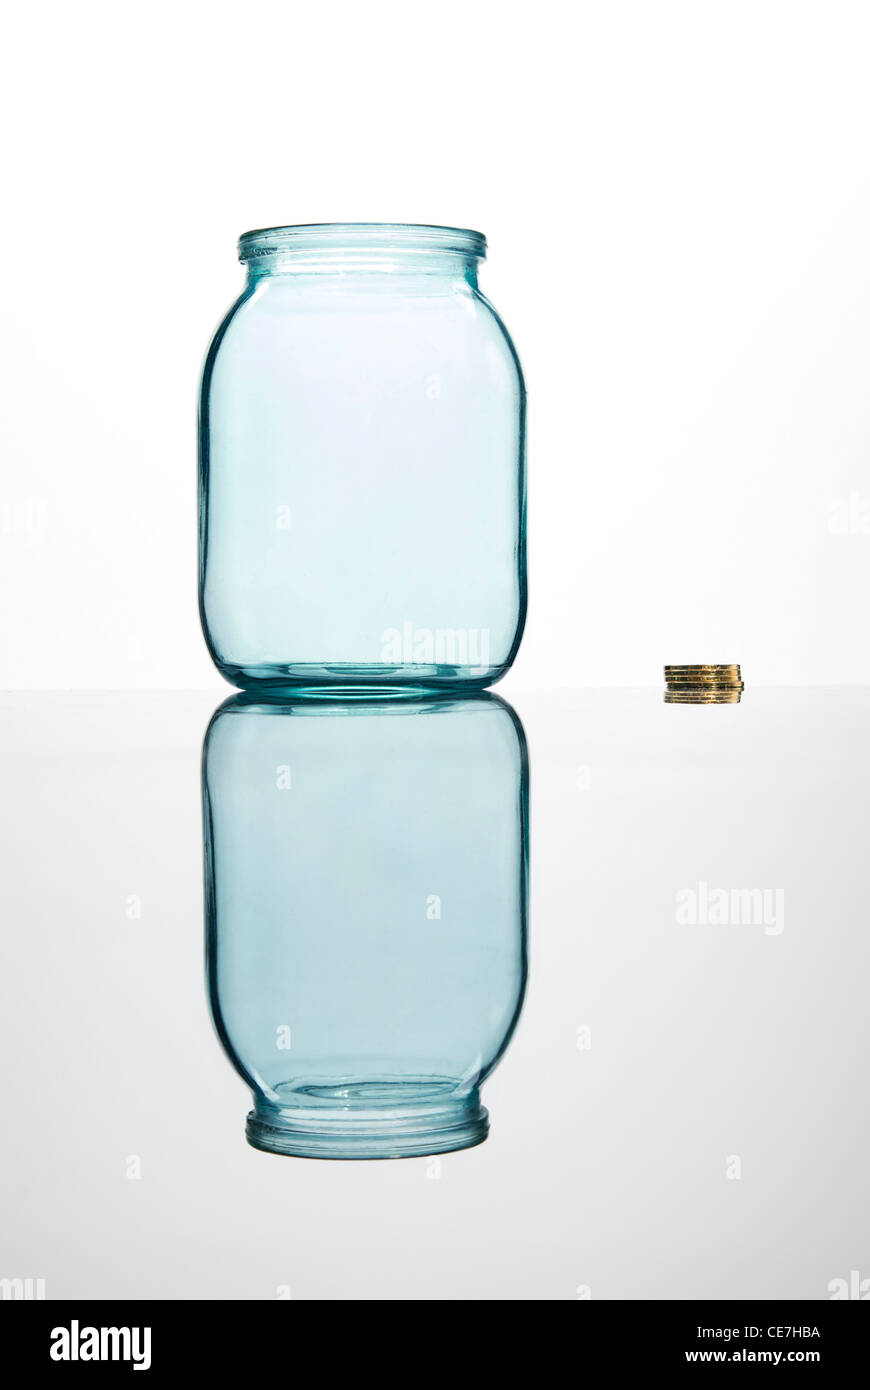 Coins and empty glass jar on white background Stock Photo